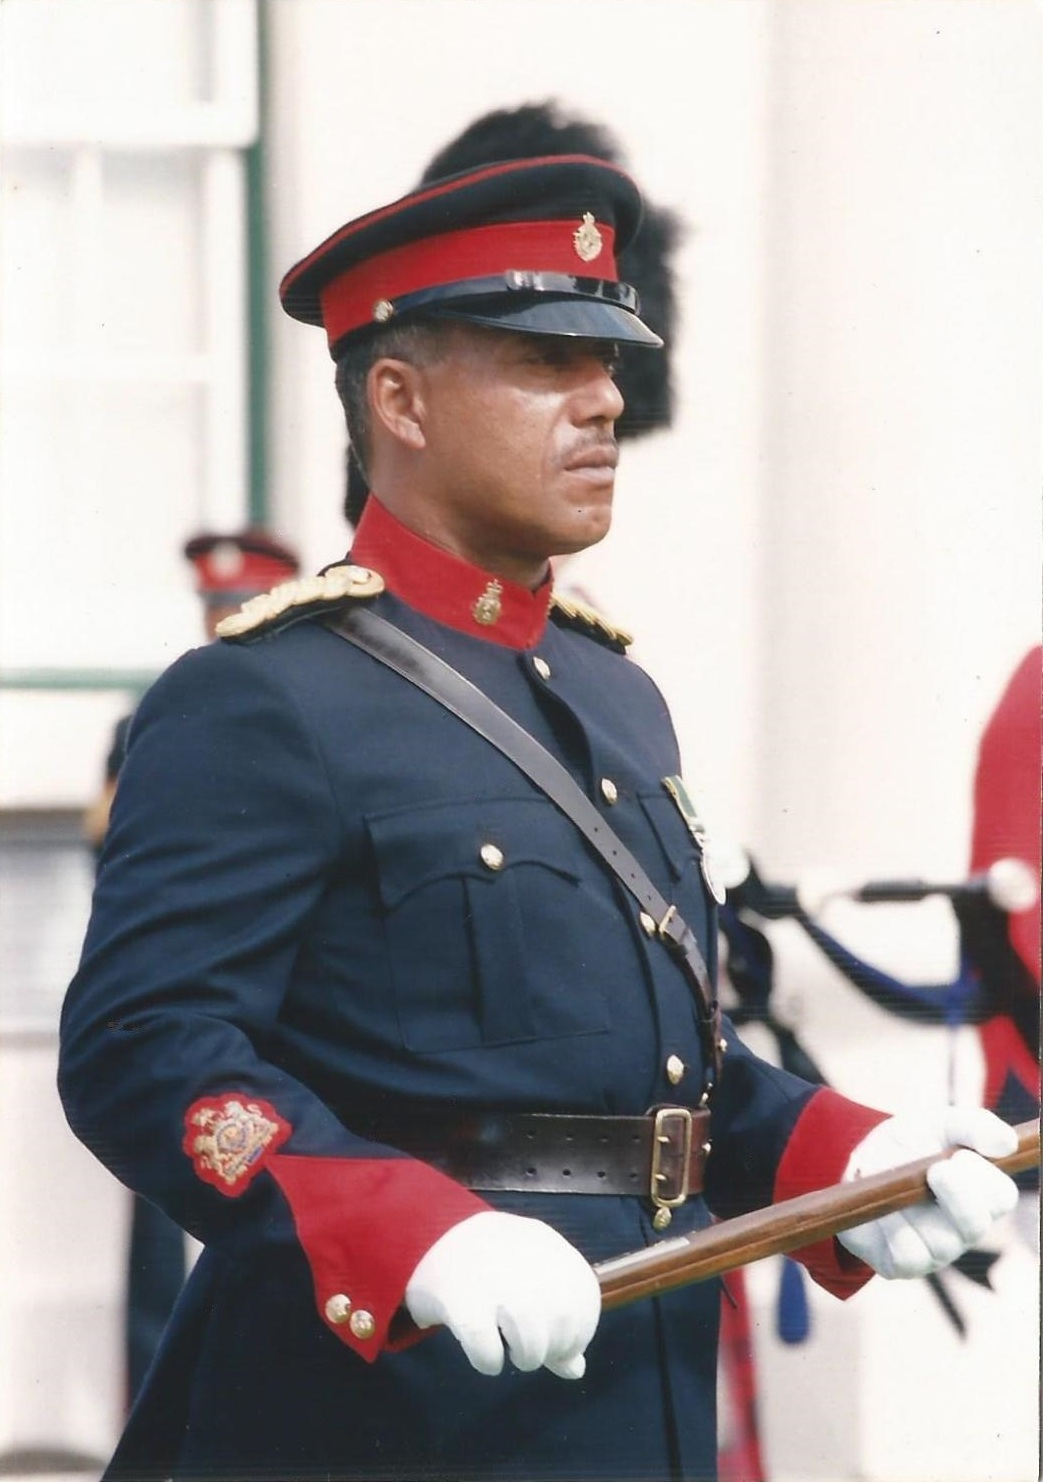 Warrant officer wikipedia sciox Choice Image